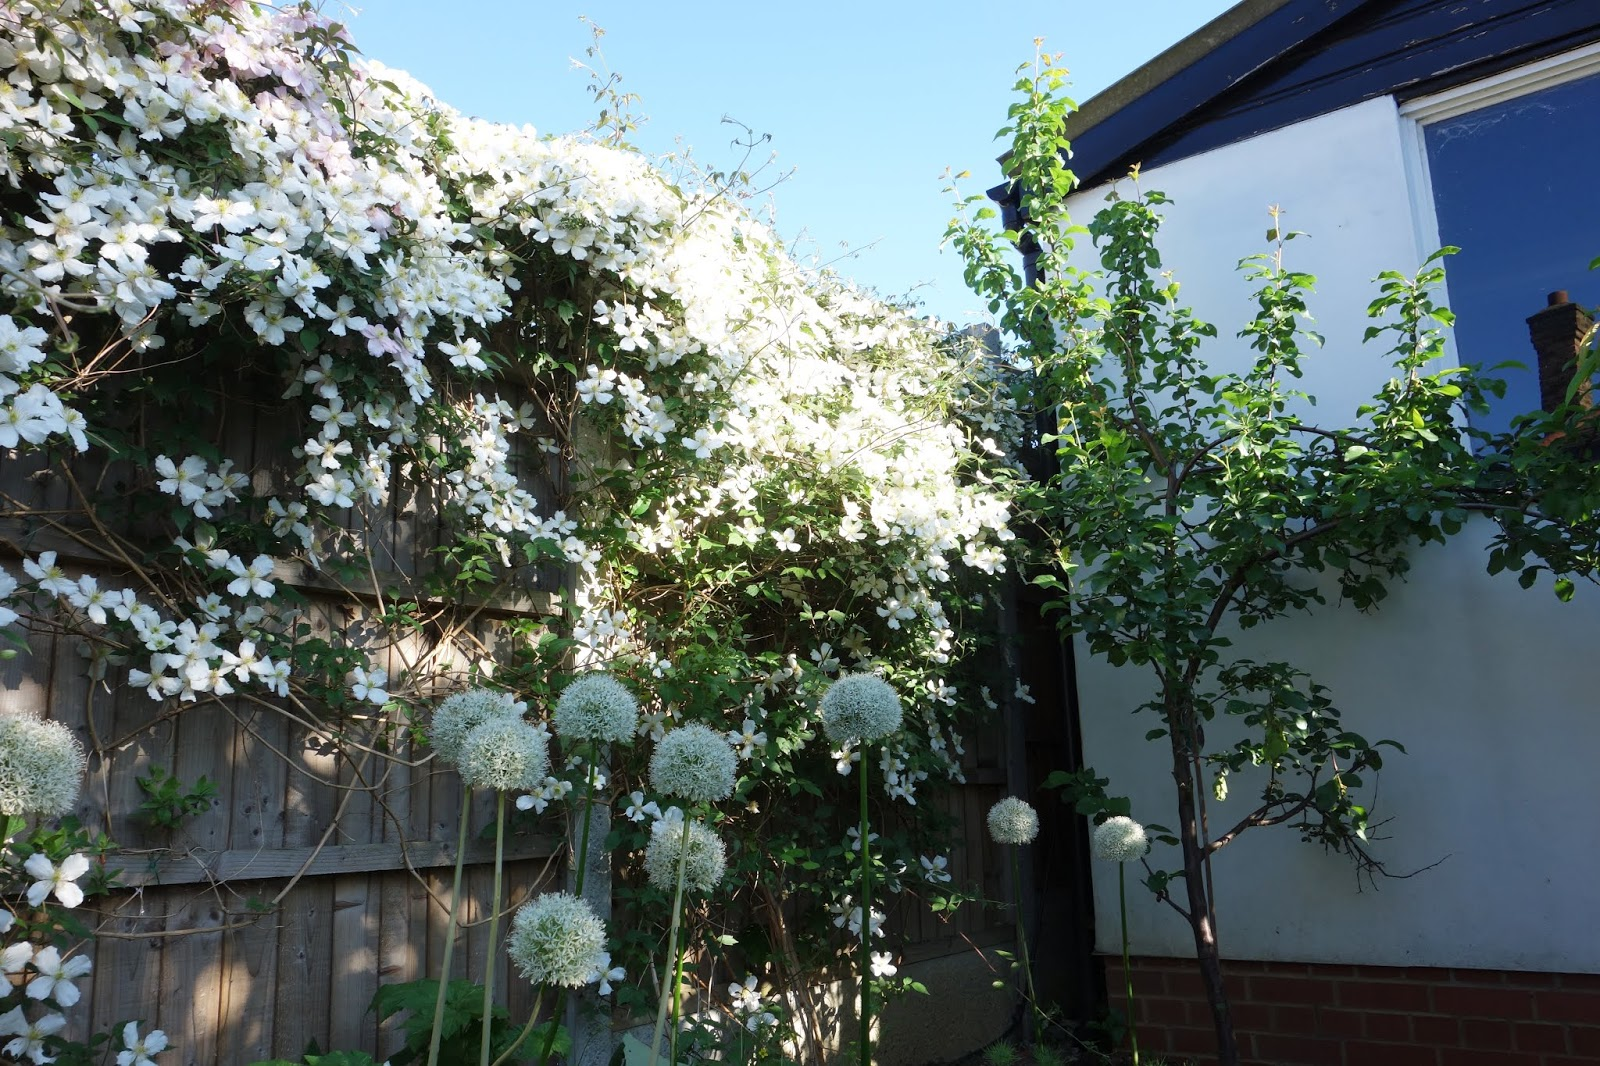 A white Clematis Montana on a fence with white alliums in the foreground. London, UK. Copyright: Is This Mutton